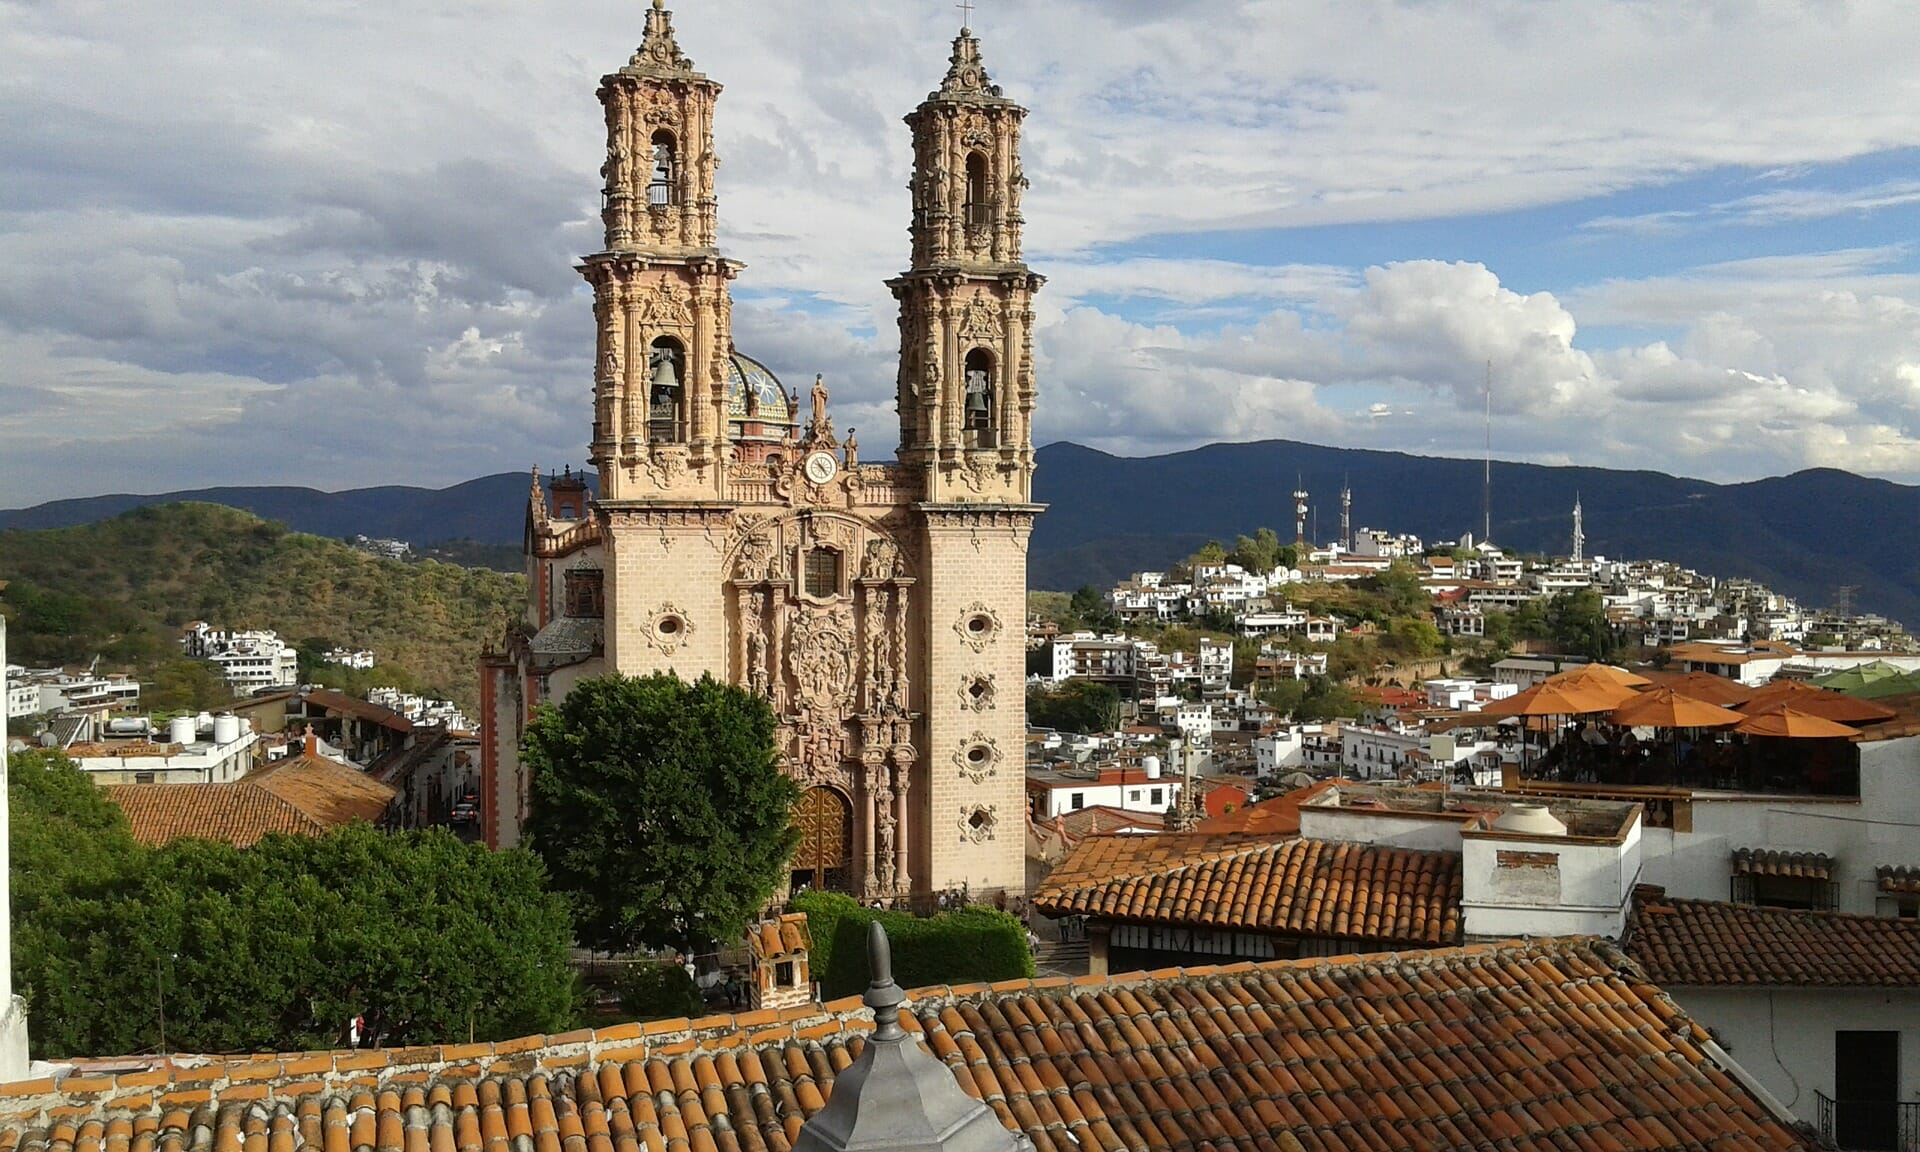 The beauty of Taxco, Mexico